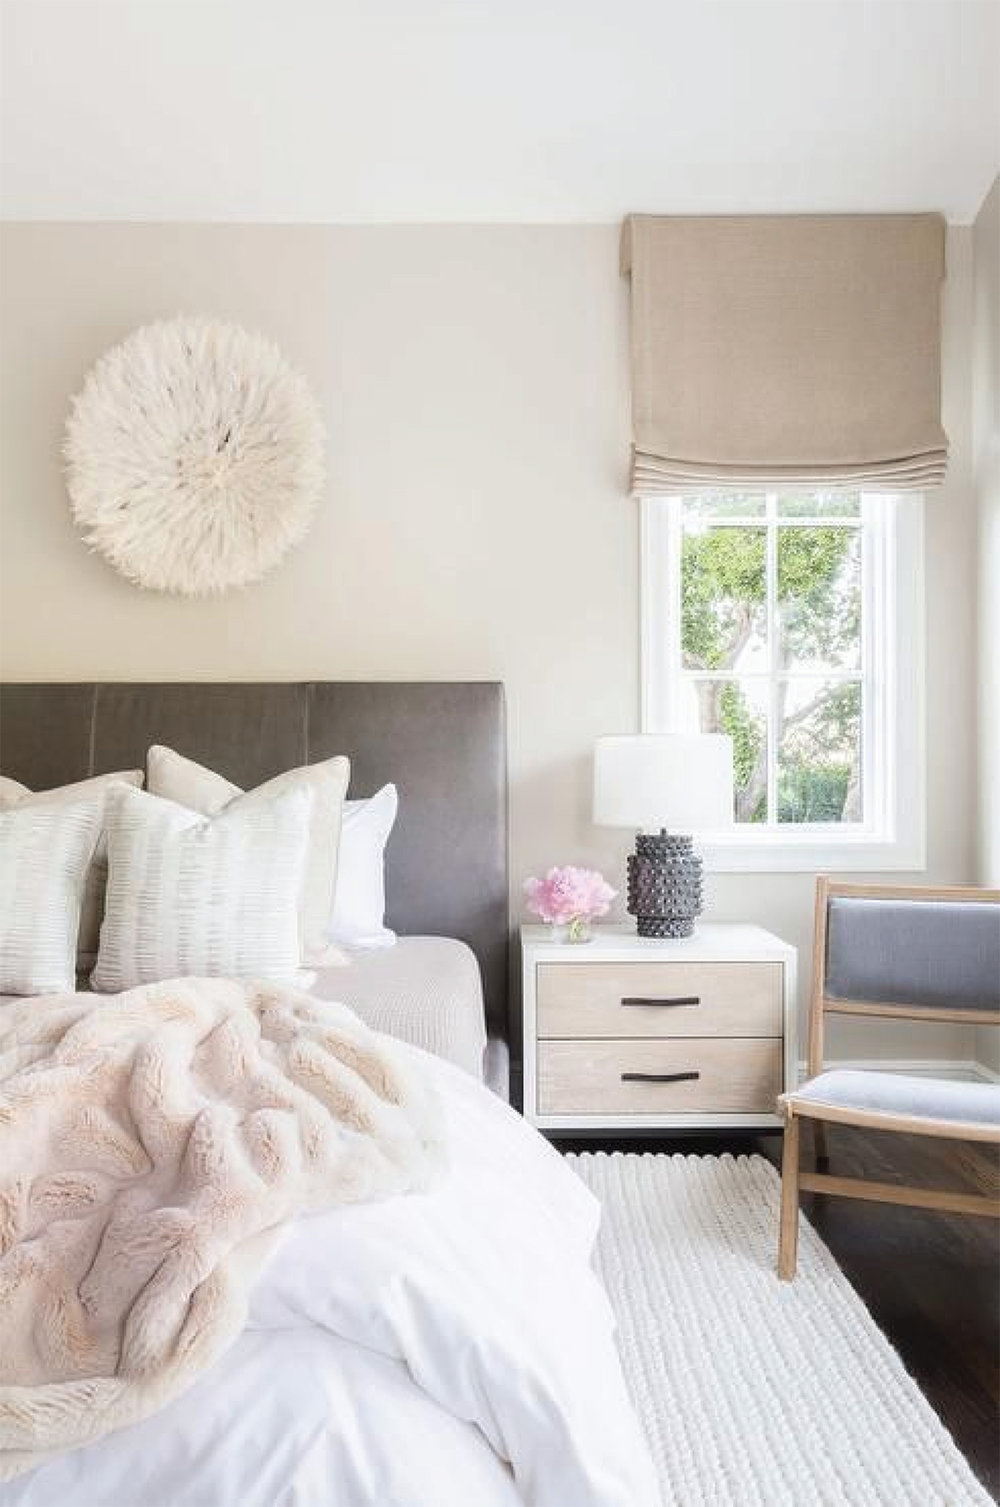 White Bright Bedroom Design | Akin Design Studio Blog